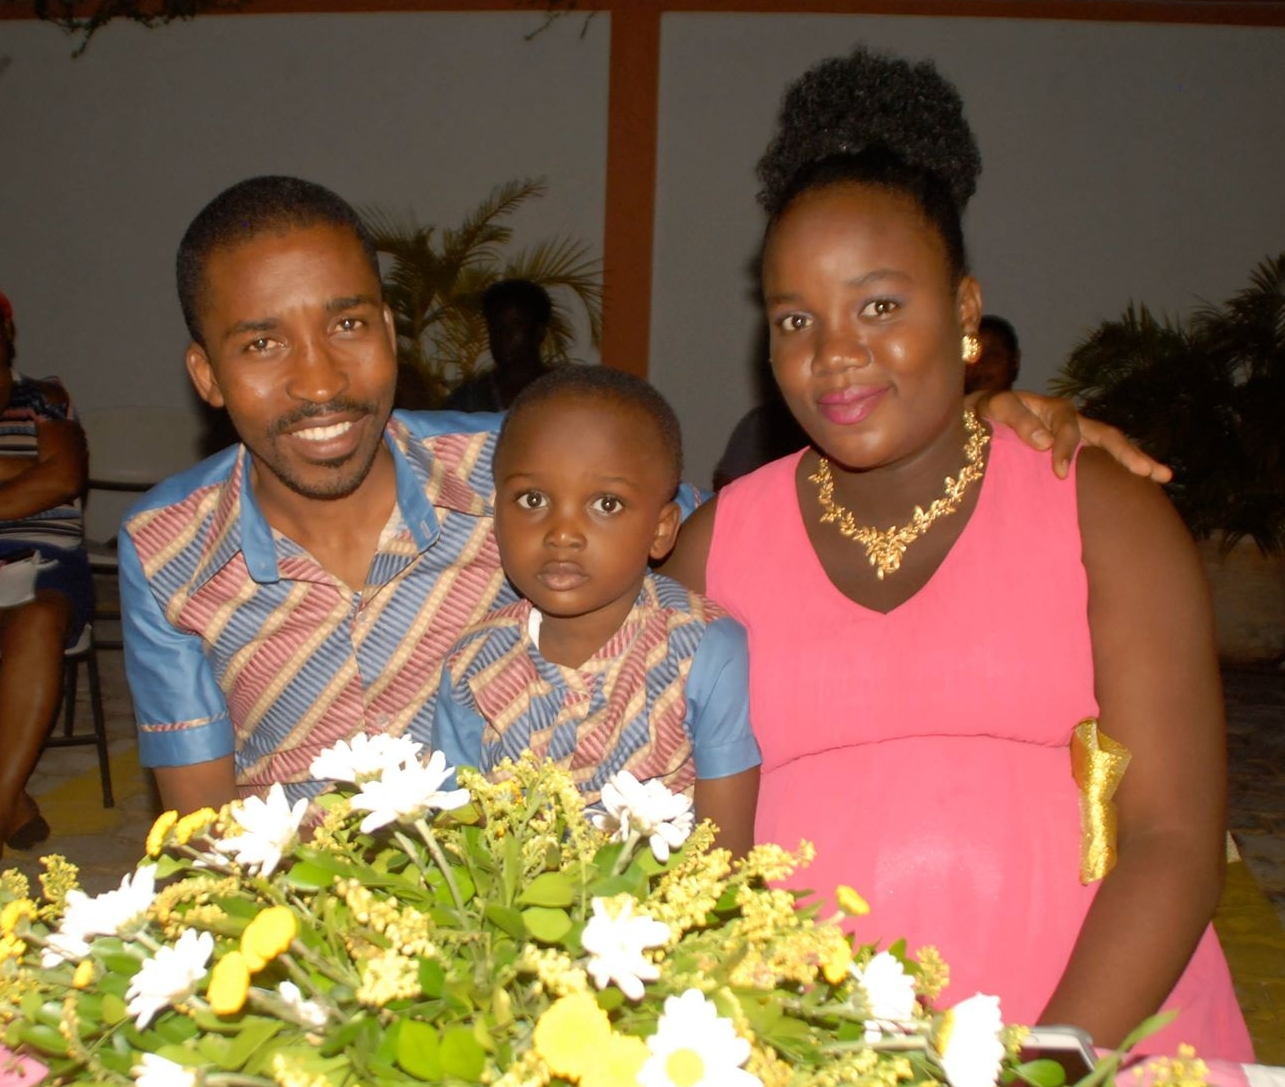 Pastor Venet, his son Asaph, and his wife Gabrielle